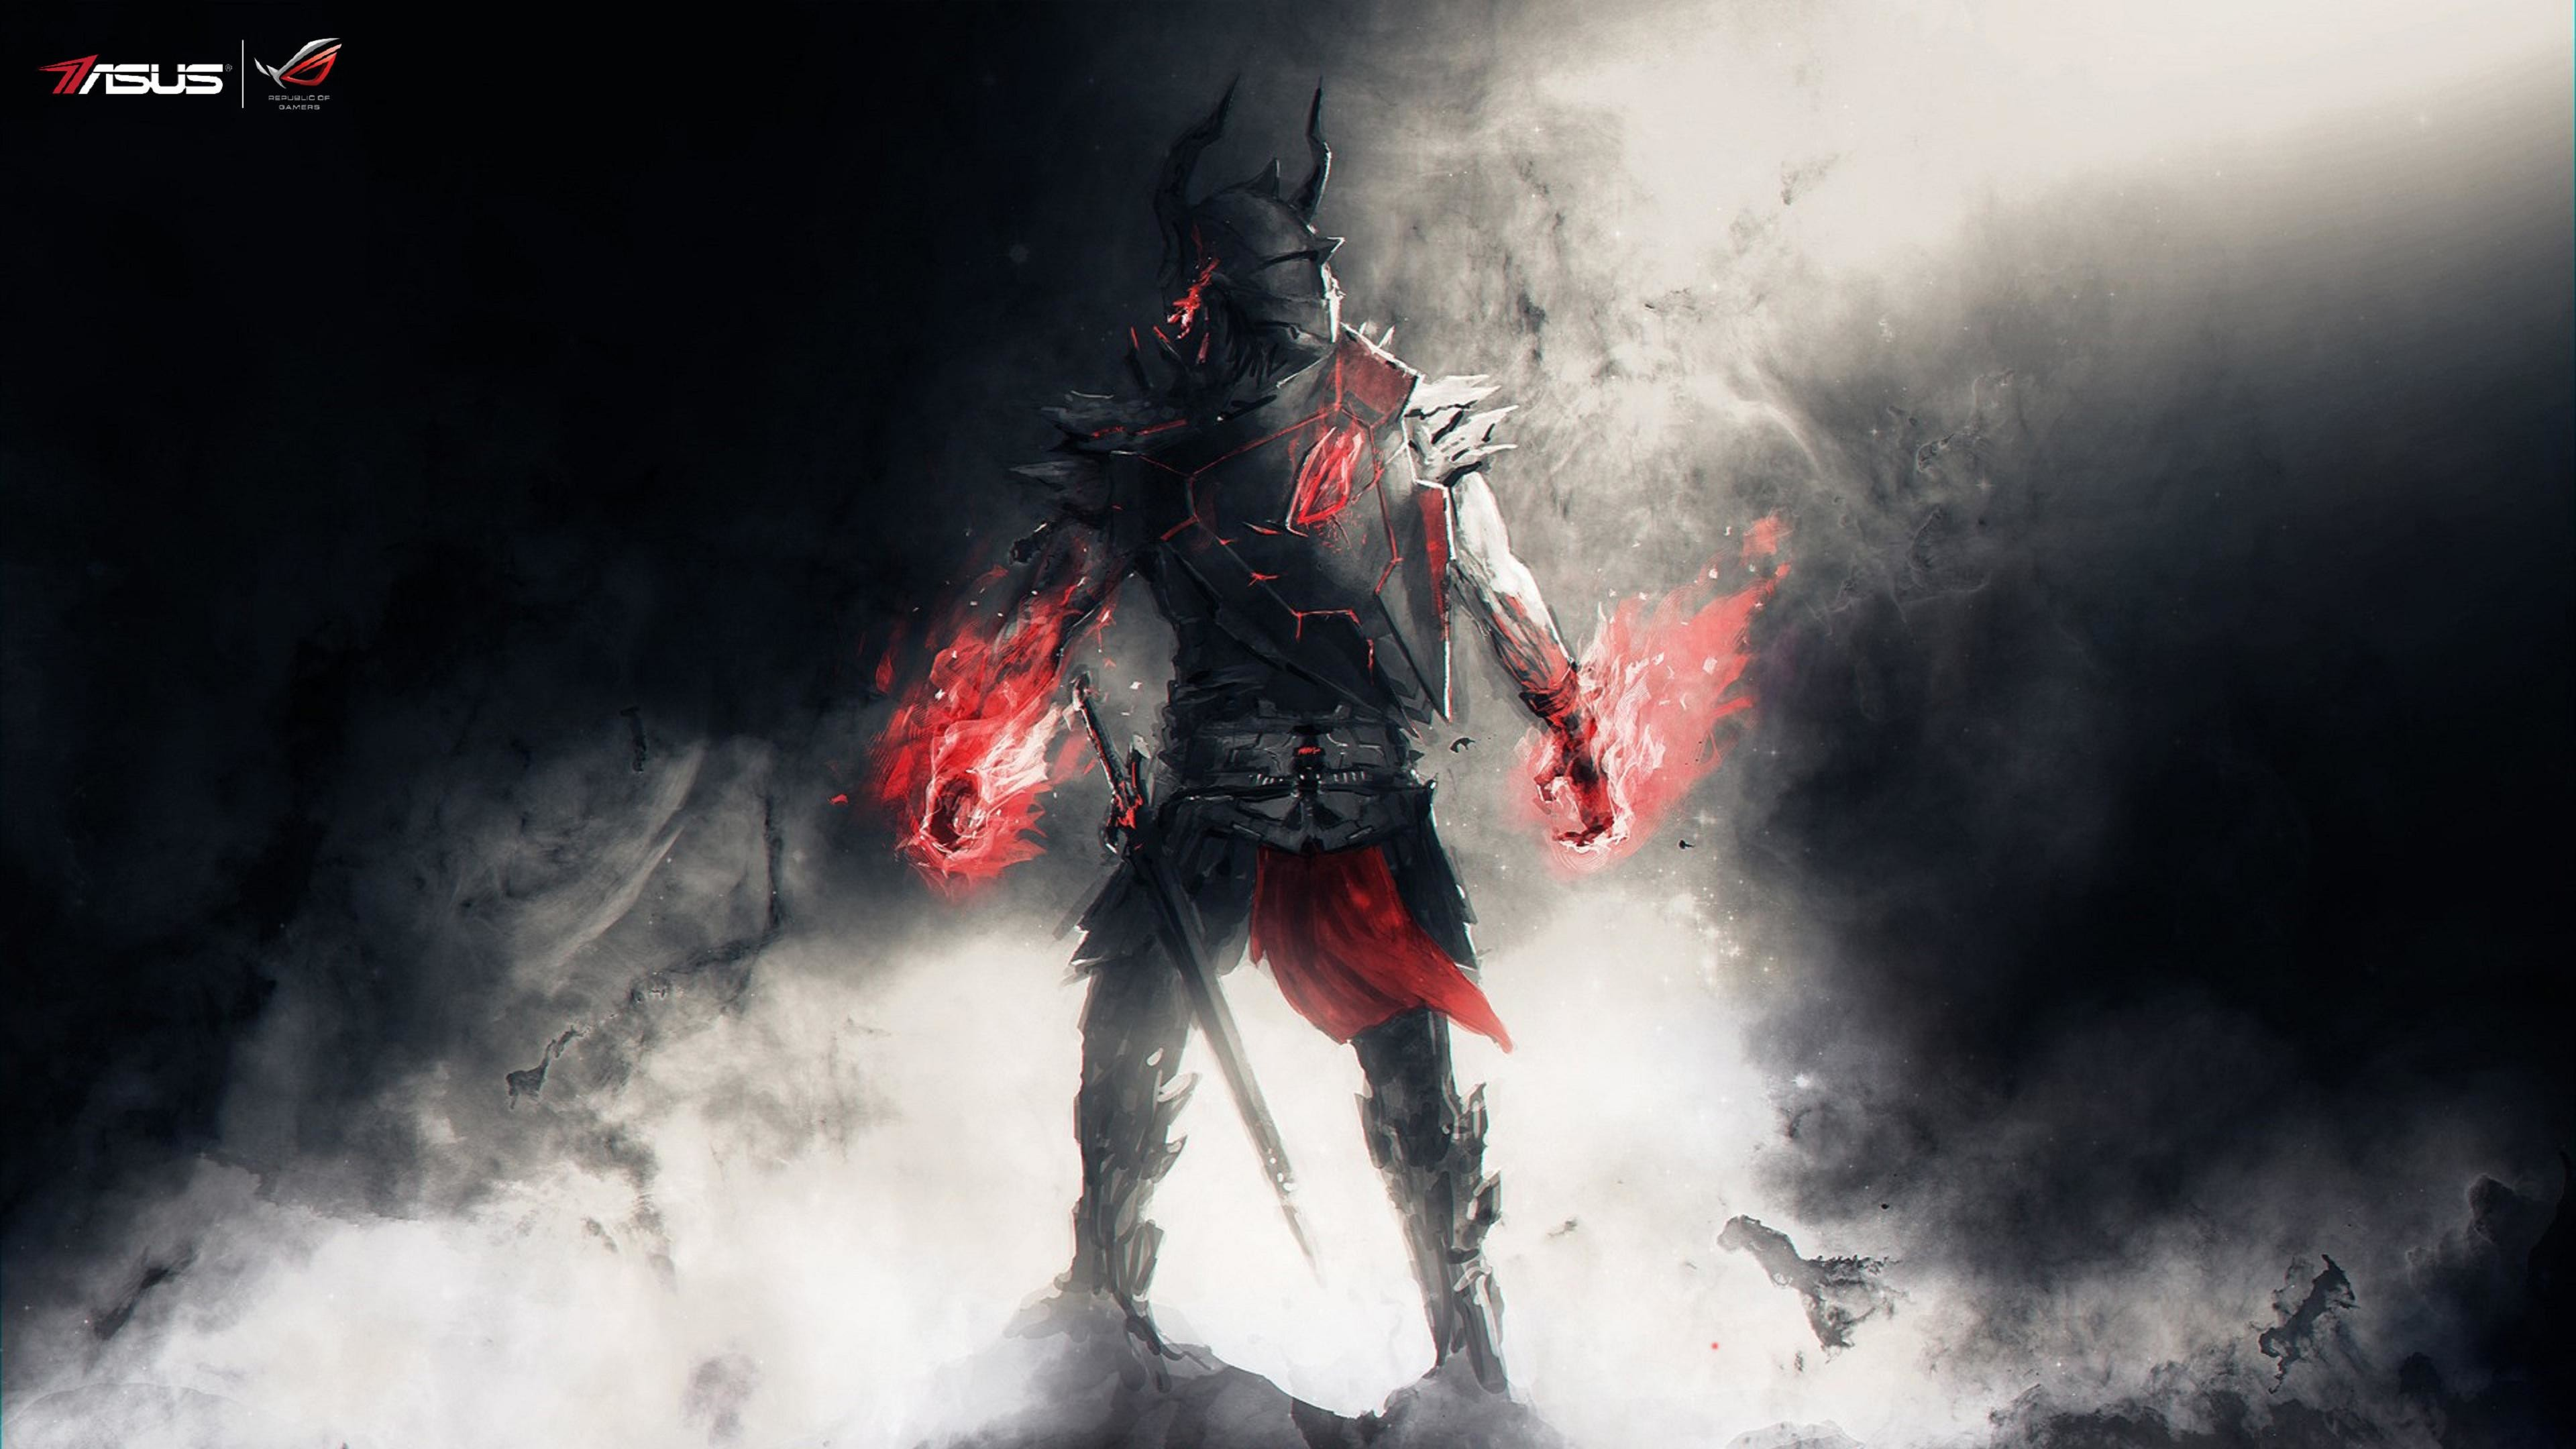 Best 20+ 4k gaming wallpaper ideas on Pinterest   The witcher 3 pc, Witcher  3 wild hunt and The witcher wild hunt